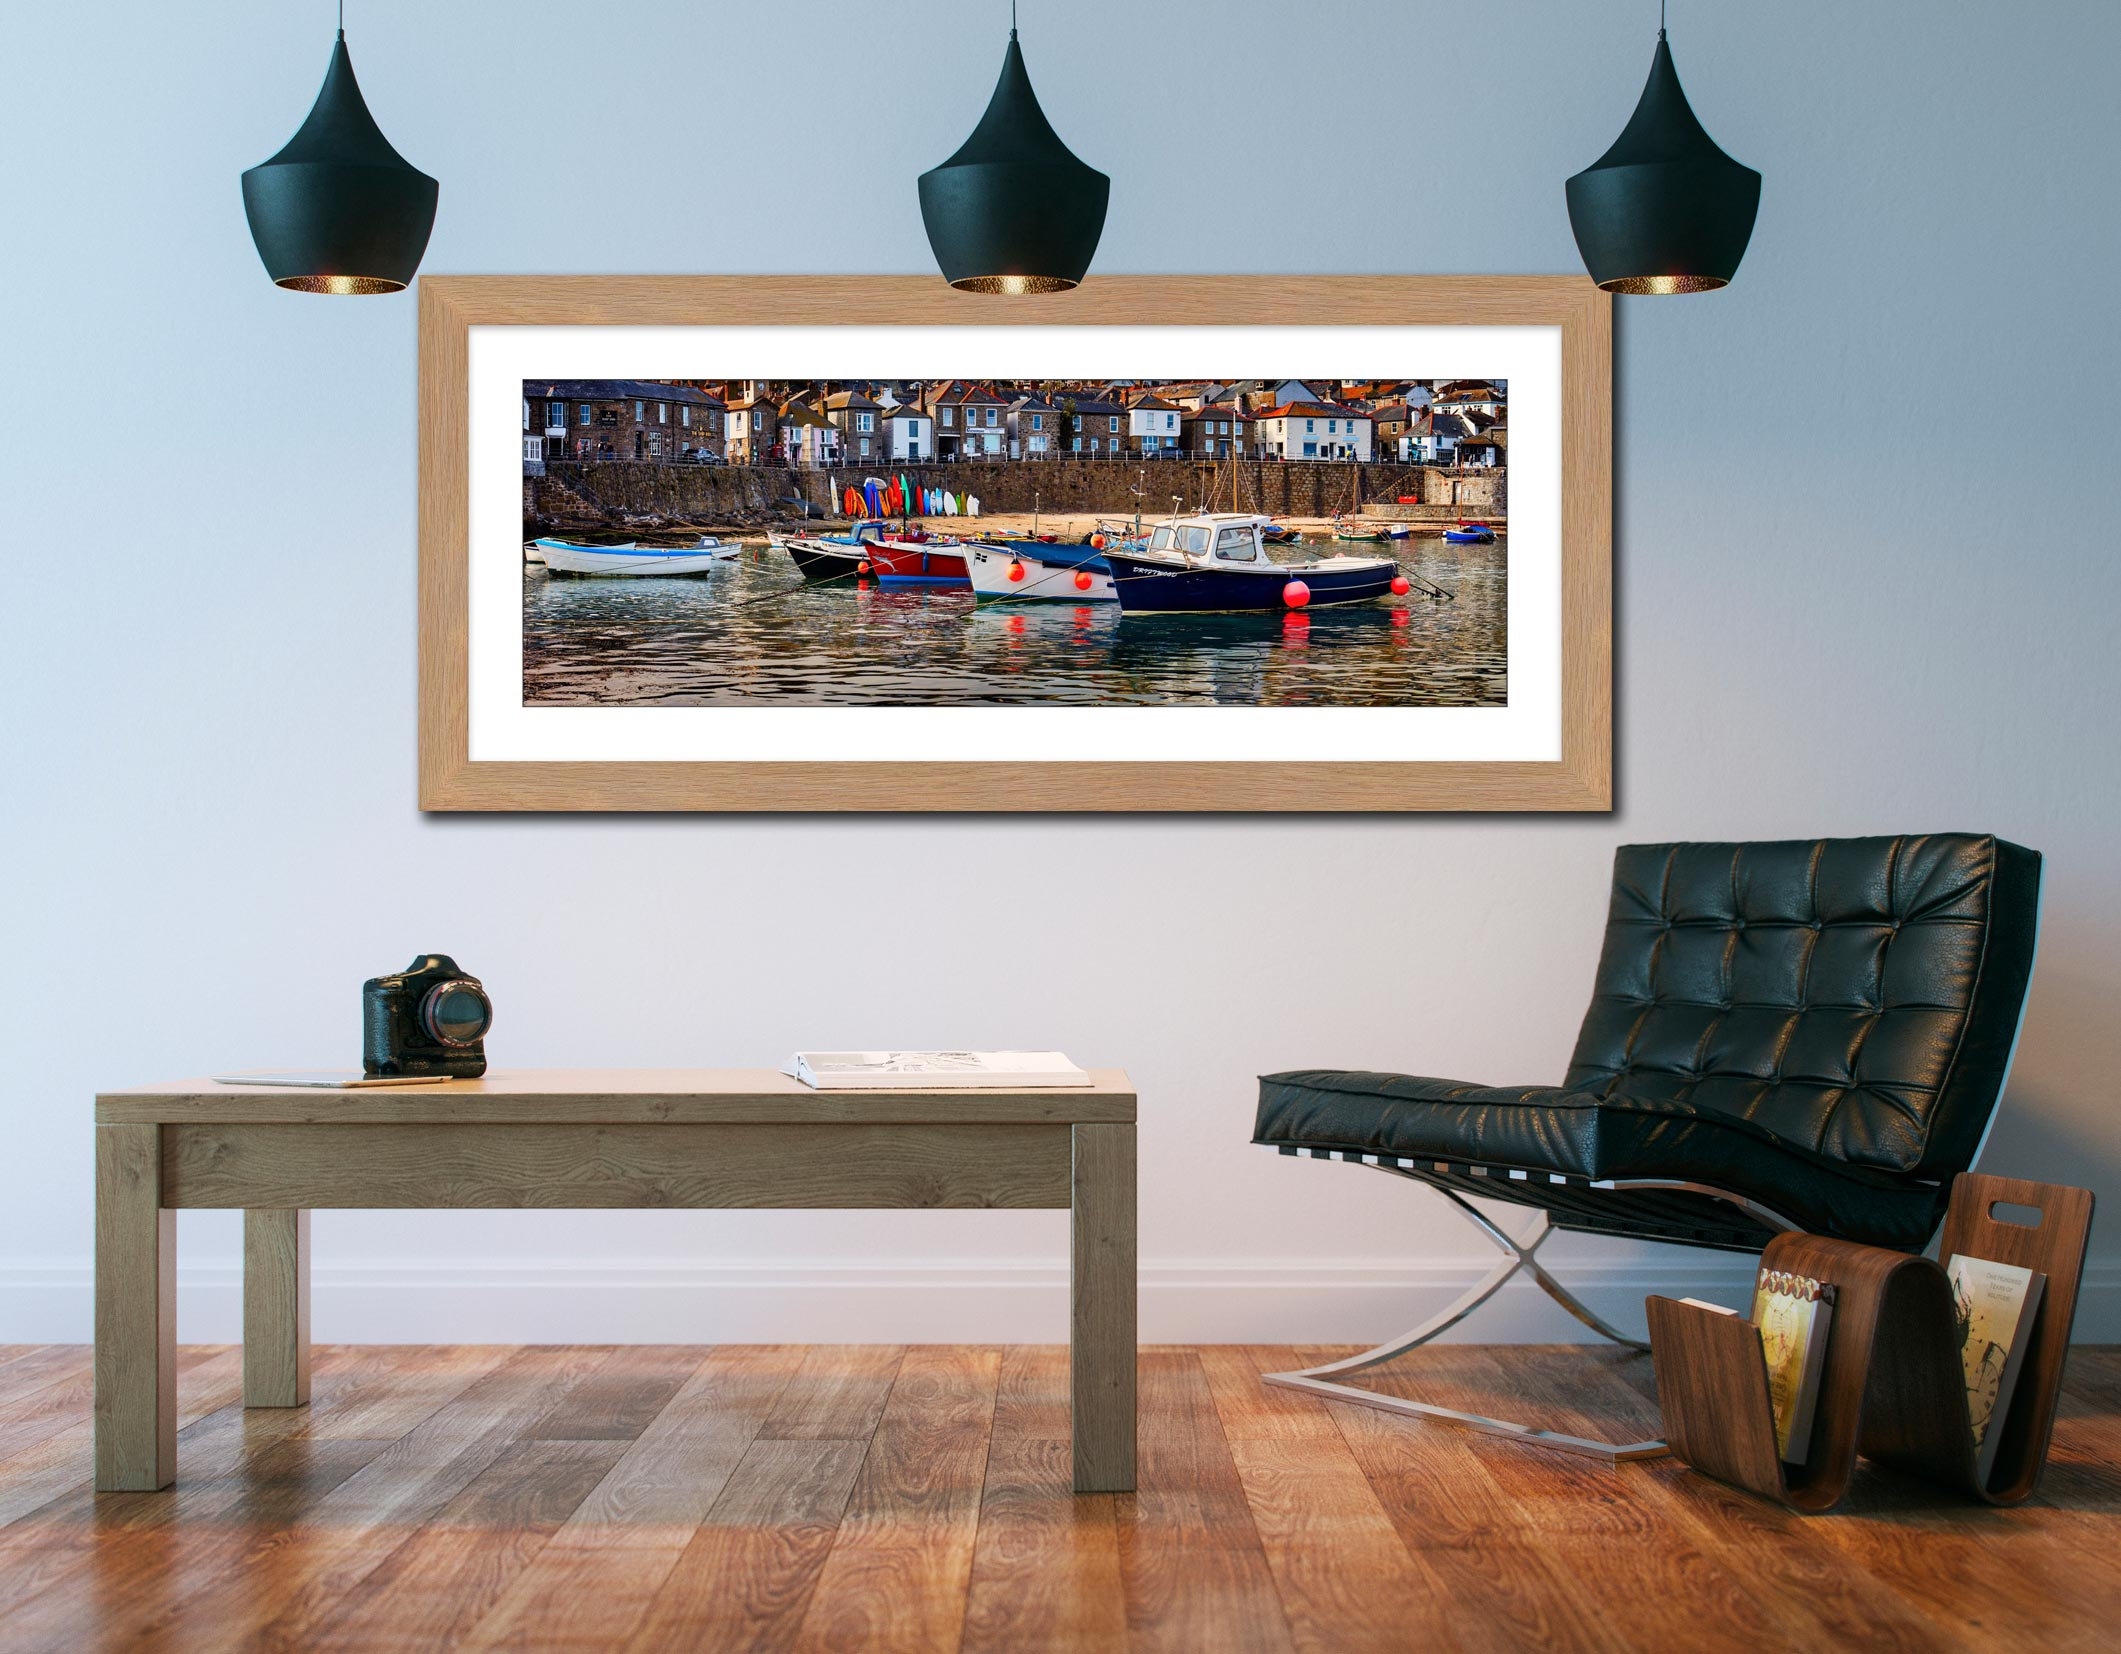 Mousehole Harbour Boats - Framed Print with Mount on Wall